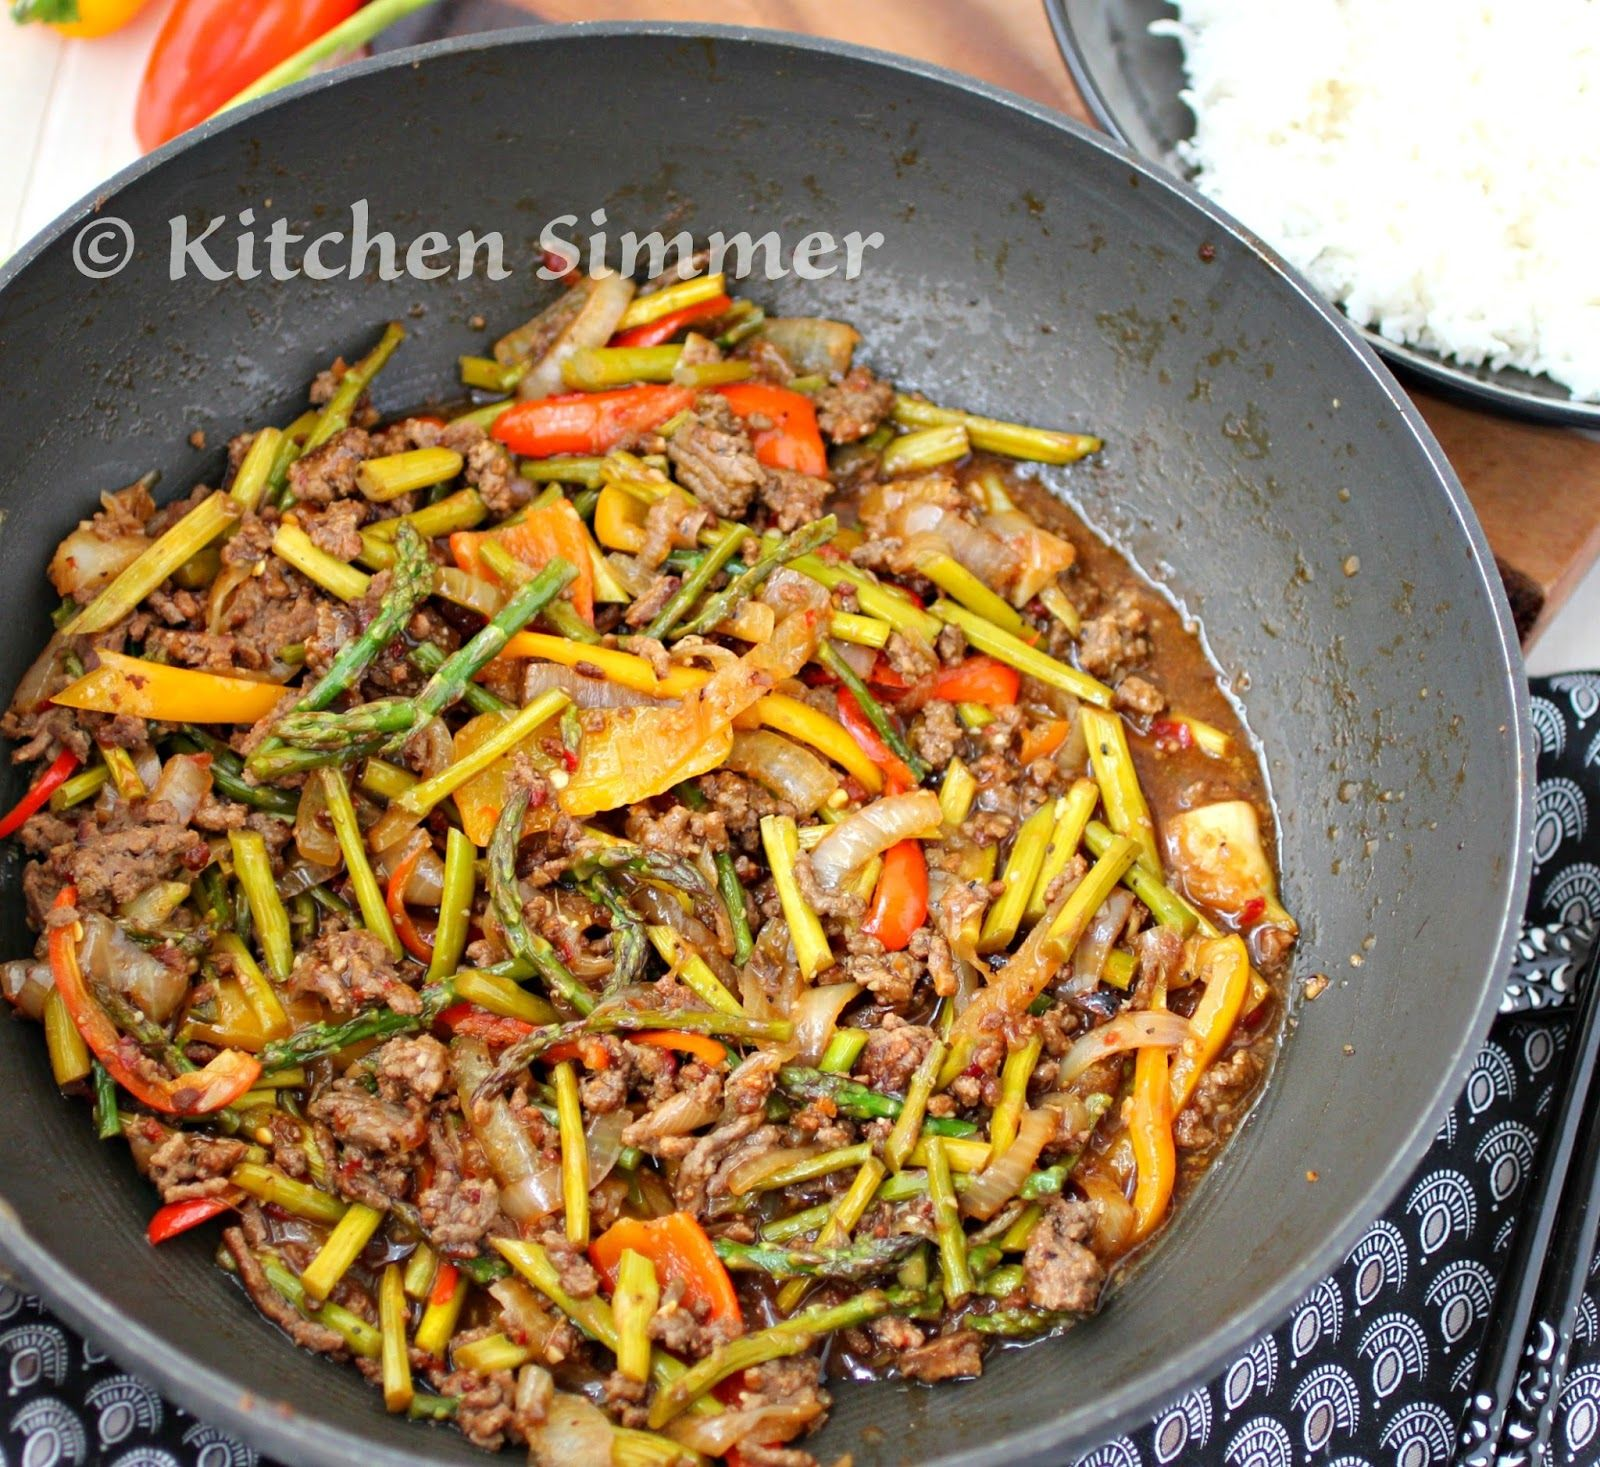 Kitchen Simmer: Mince Beef and Asparagus Stir Fry